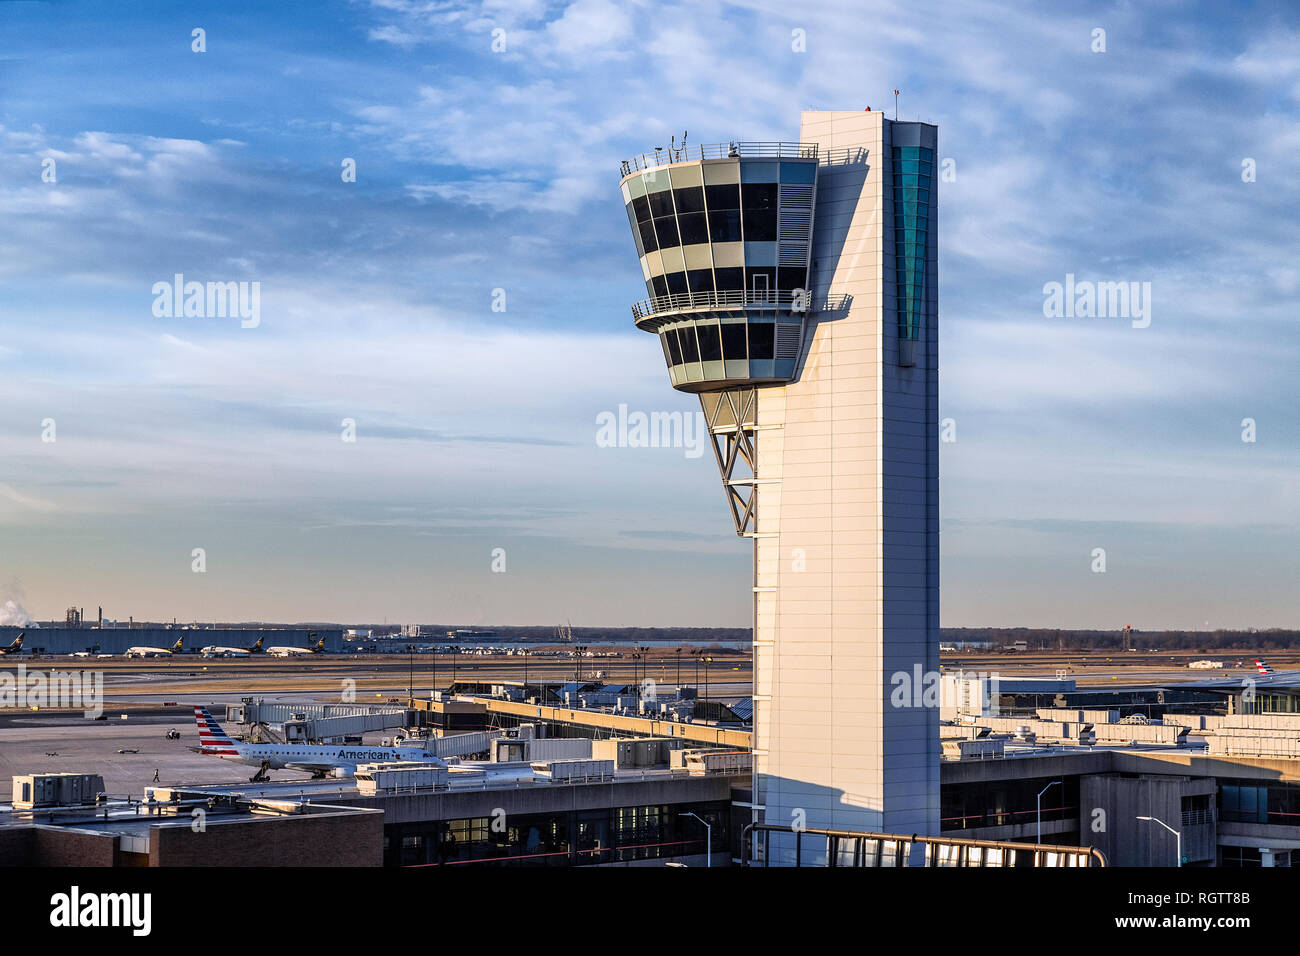 Air traffic control tower, Philadelphia International Airport, USA. - Stock Image